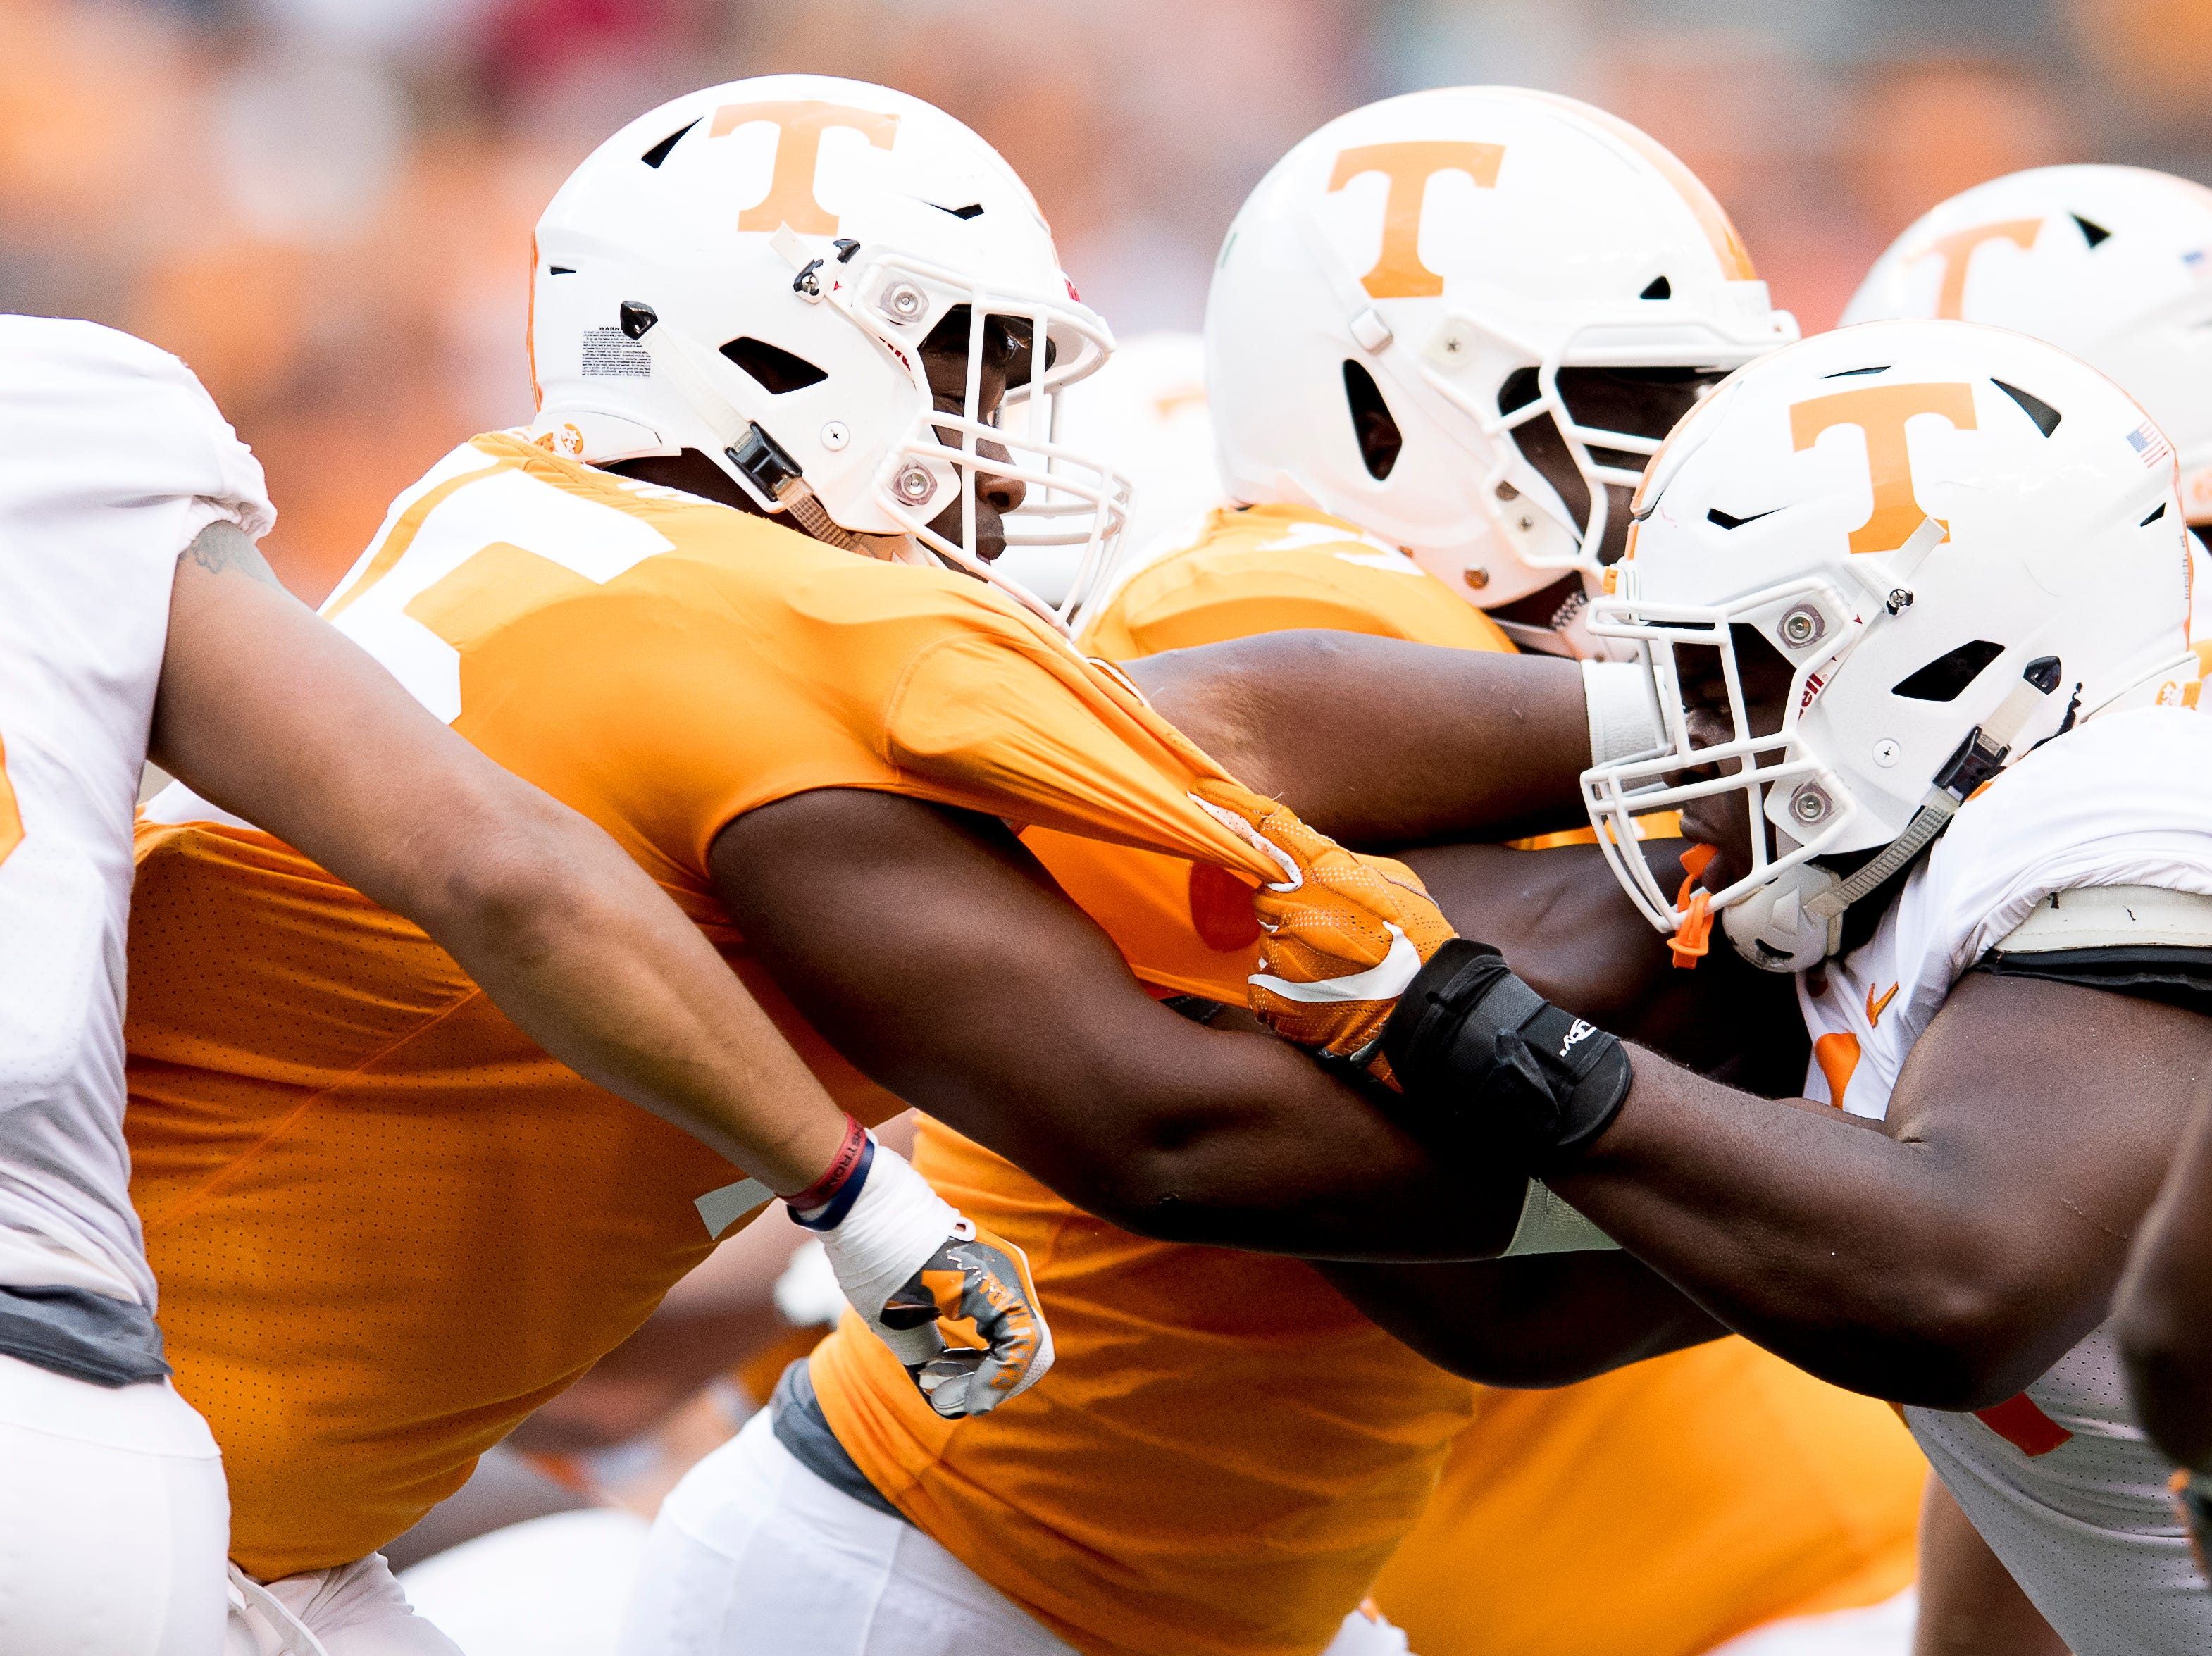 Tennessee offensive lineman Jerome Carvin (75) and Tennessee defensive lineman Kingston Harris (54) tackle one another during the Tennessee Spring Game at Neyland Stadium in Knoxville, Tennessee on Saturday, April 13, 2019.